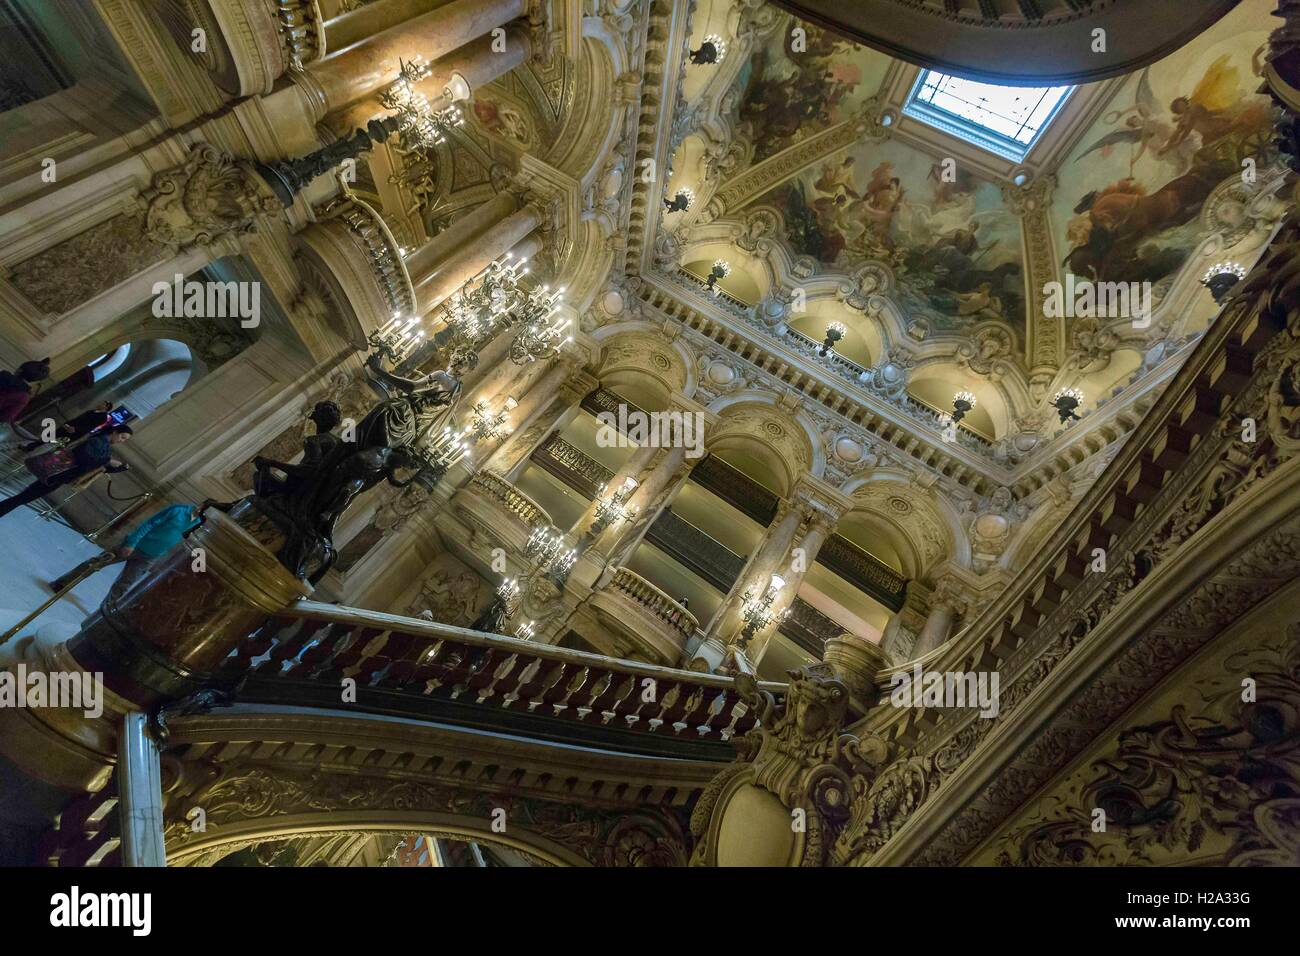 Paris, France. 3rd Sep, 2016. The Palais Garnier is a 1,979-seat opera house in the 9th arrondissement of Paris. - Stock Image